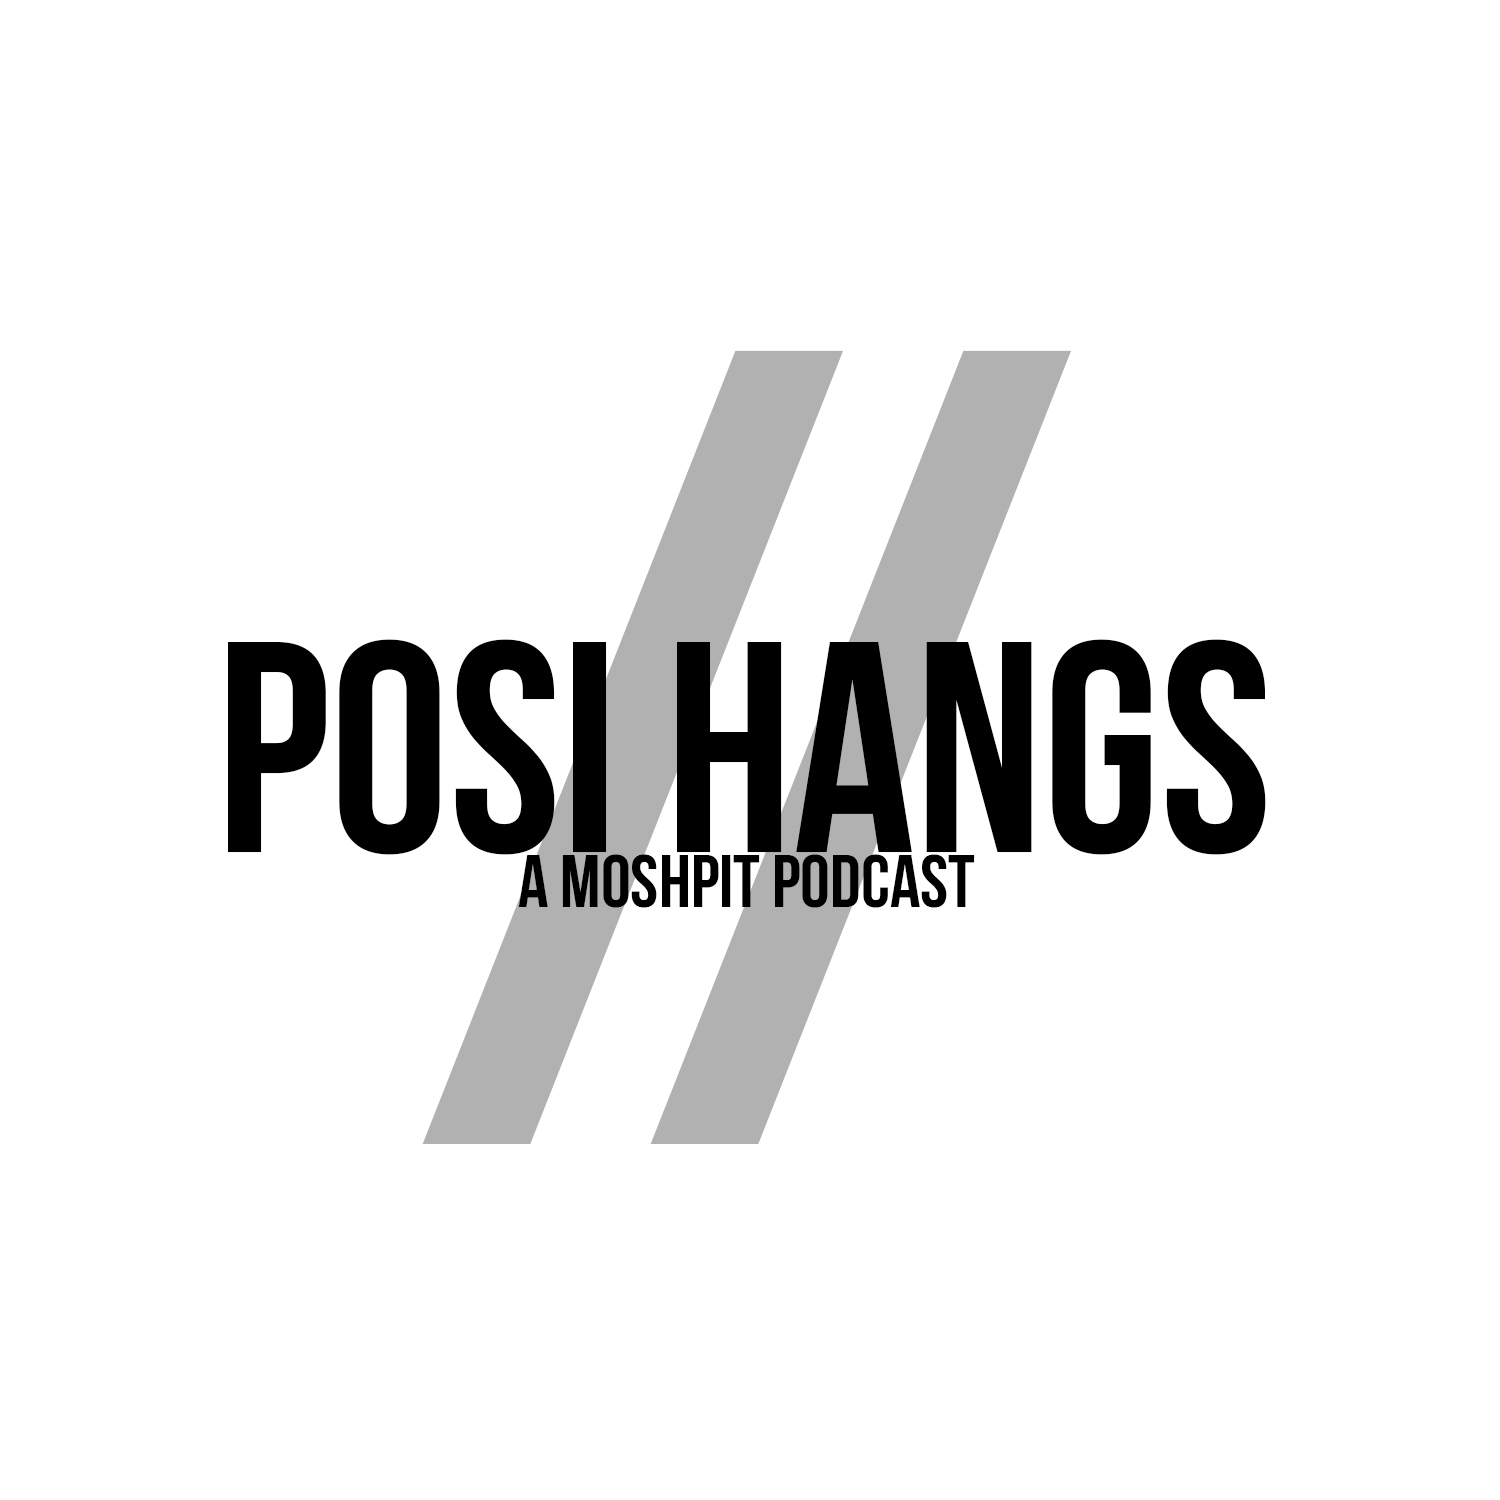 Posi Hangs by Moshpit